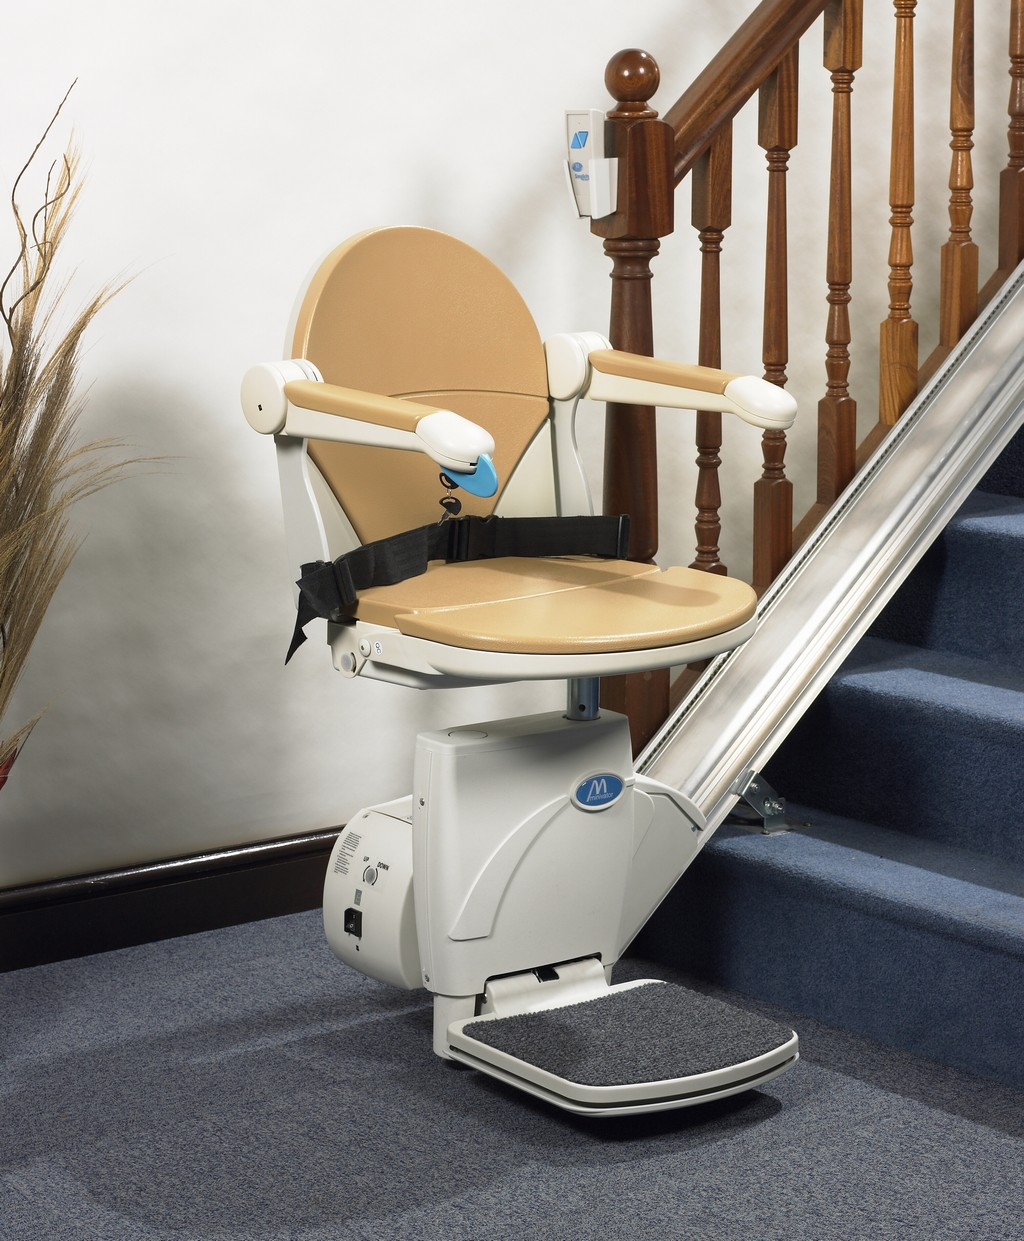 stair chair lift providers in cincinnati ohio, elevators stair lifts, pennsylvania stair lifts, acorn stairlifts jobs